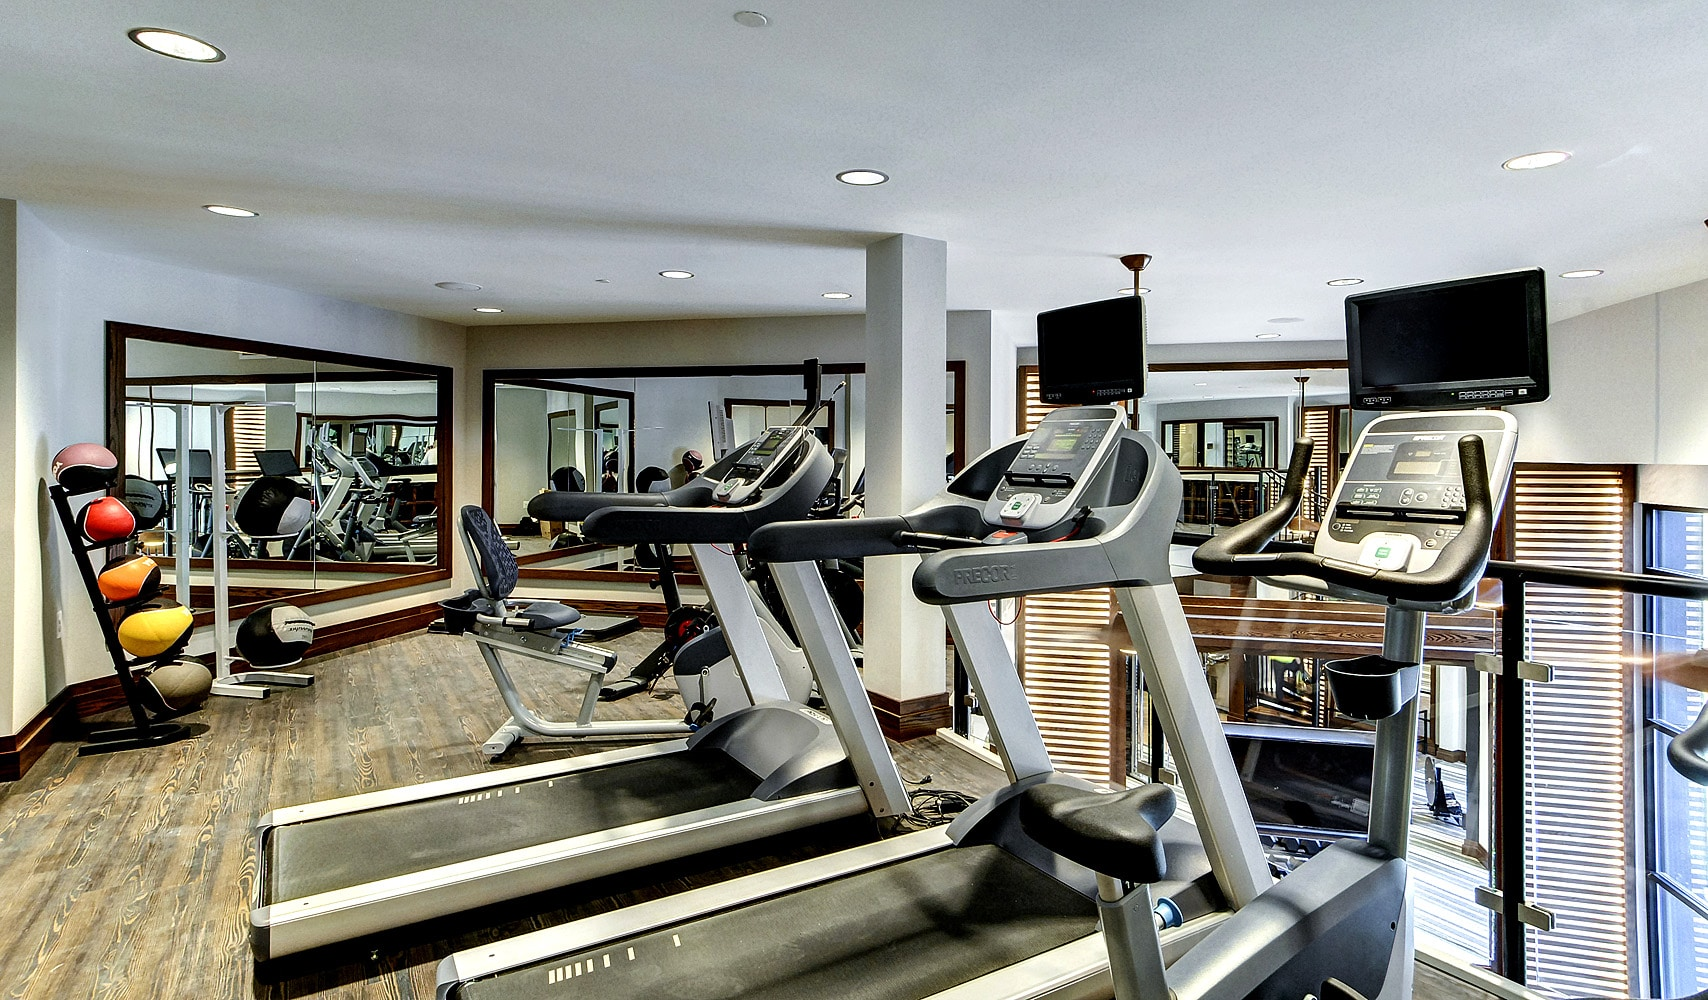 fitness center-Maybrook luxury apartments on main line_DSC2262_4_6 web